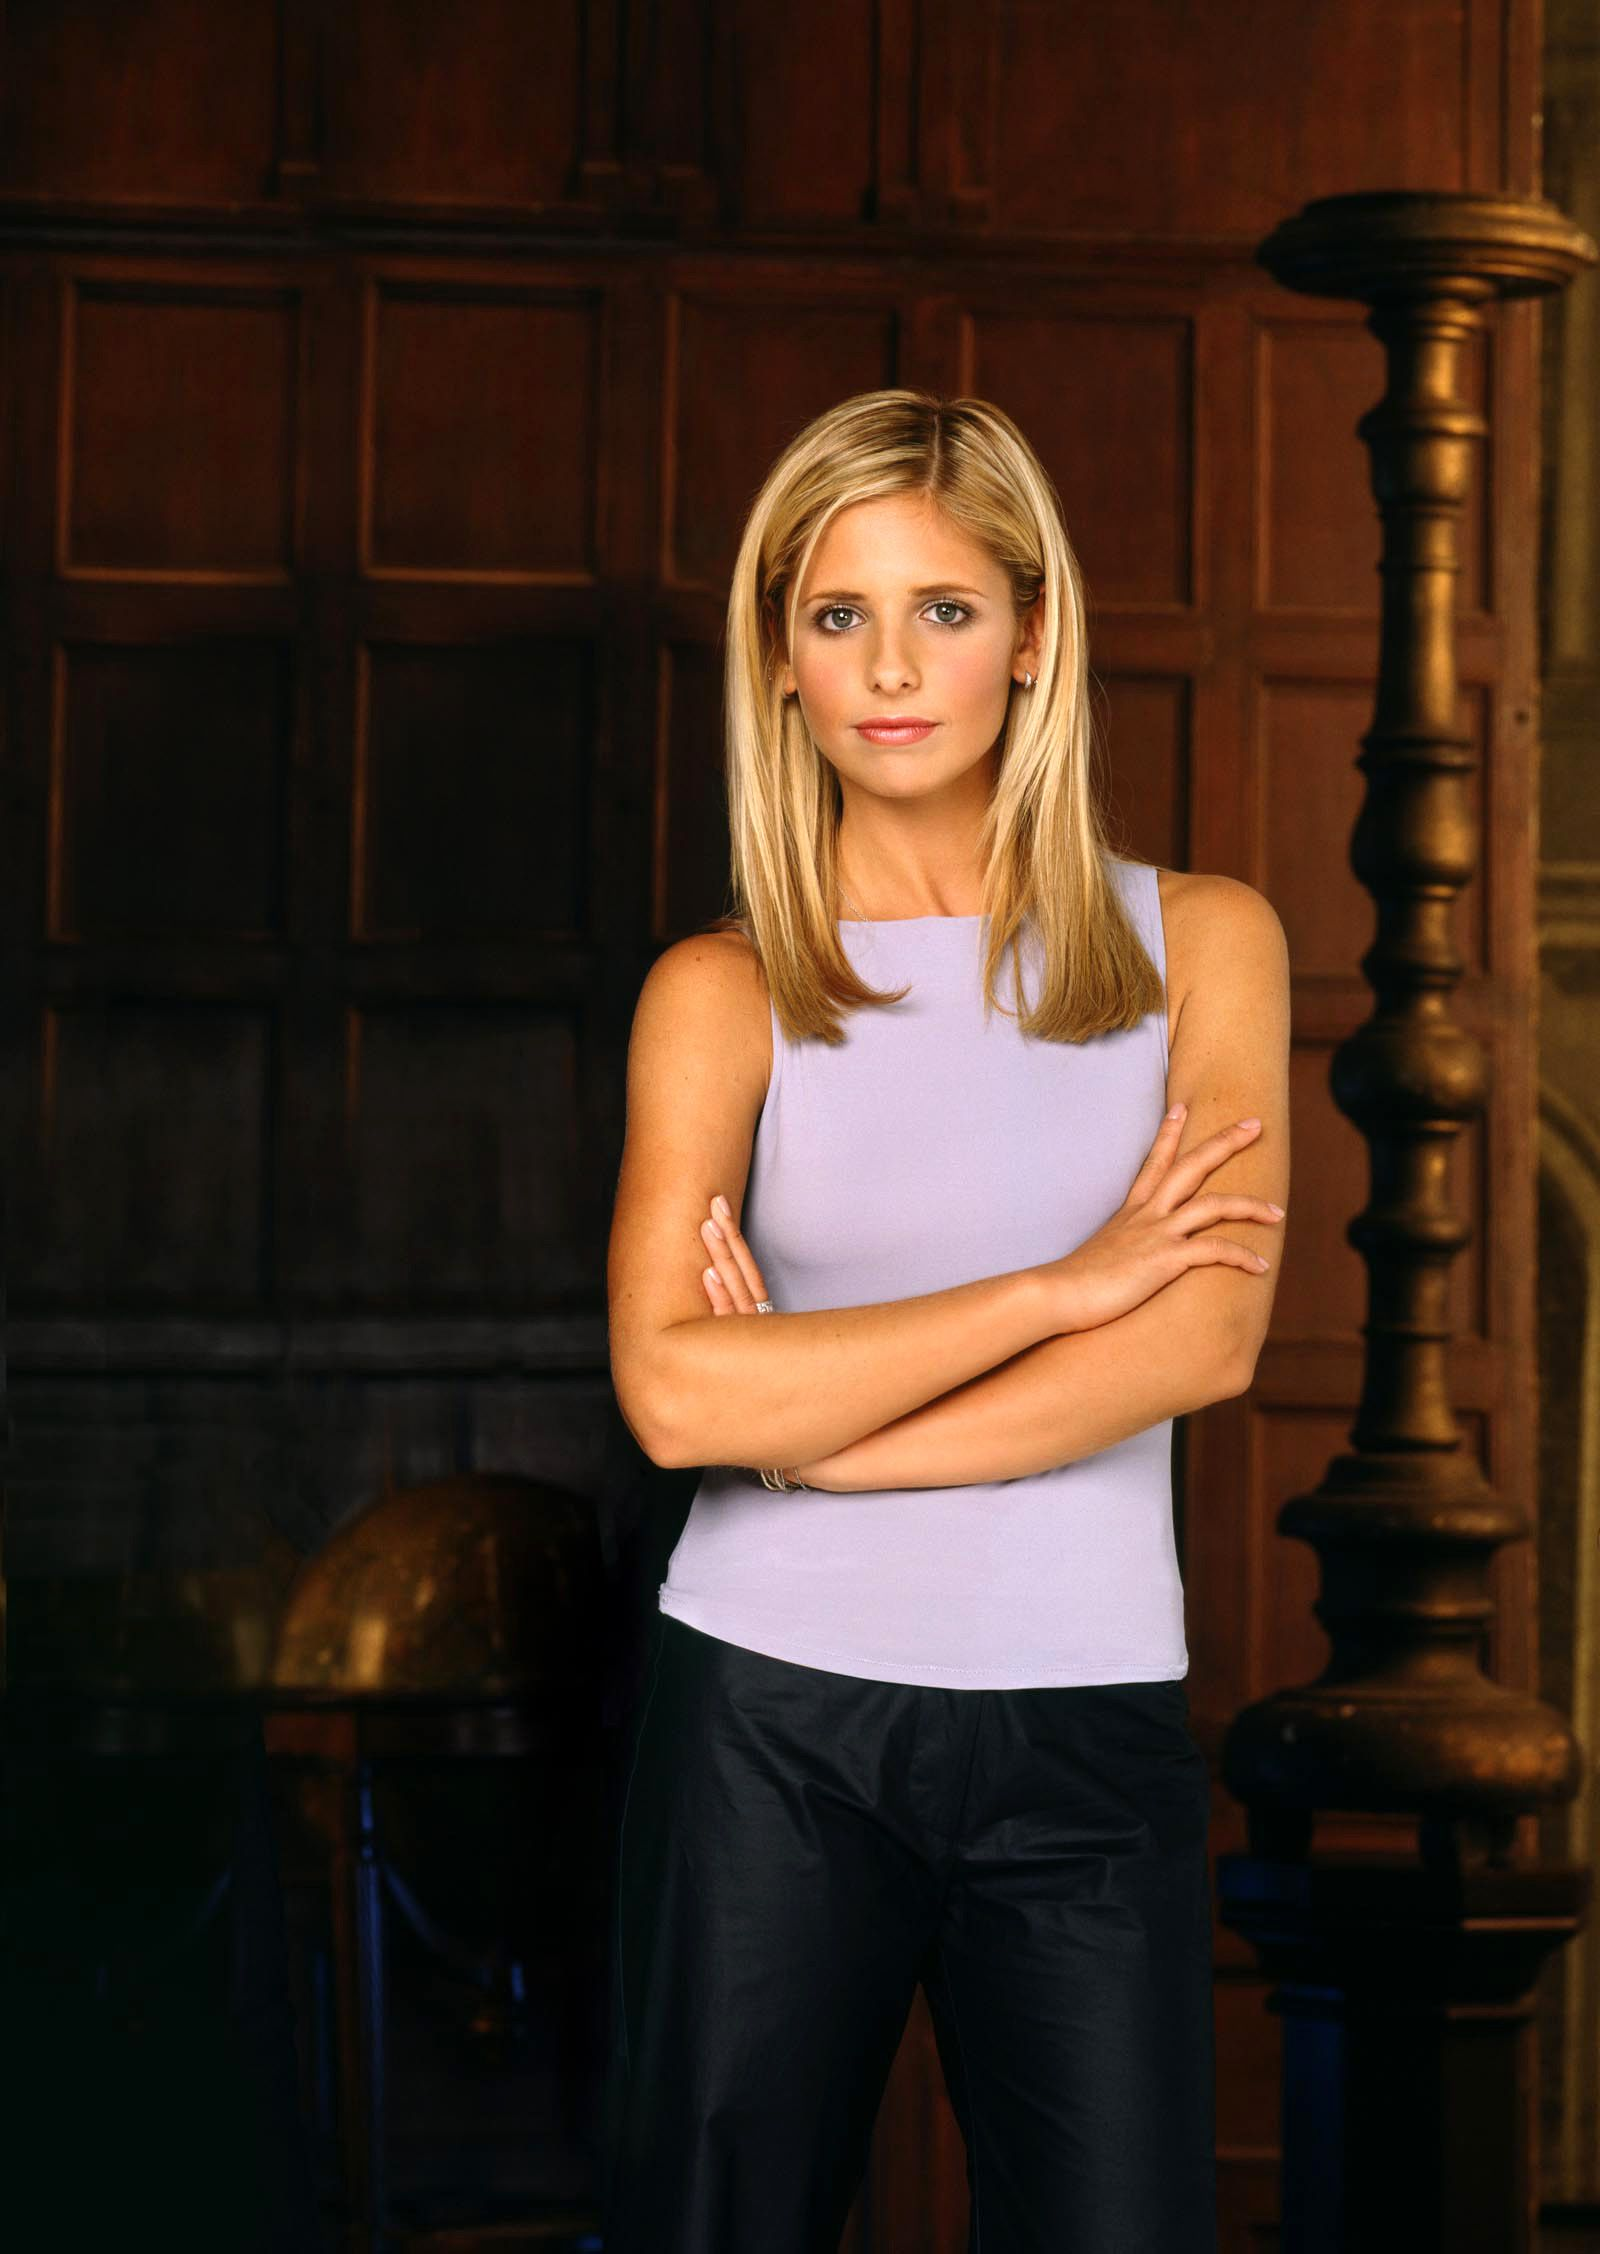 Sarah michelle gellar sexy collection